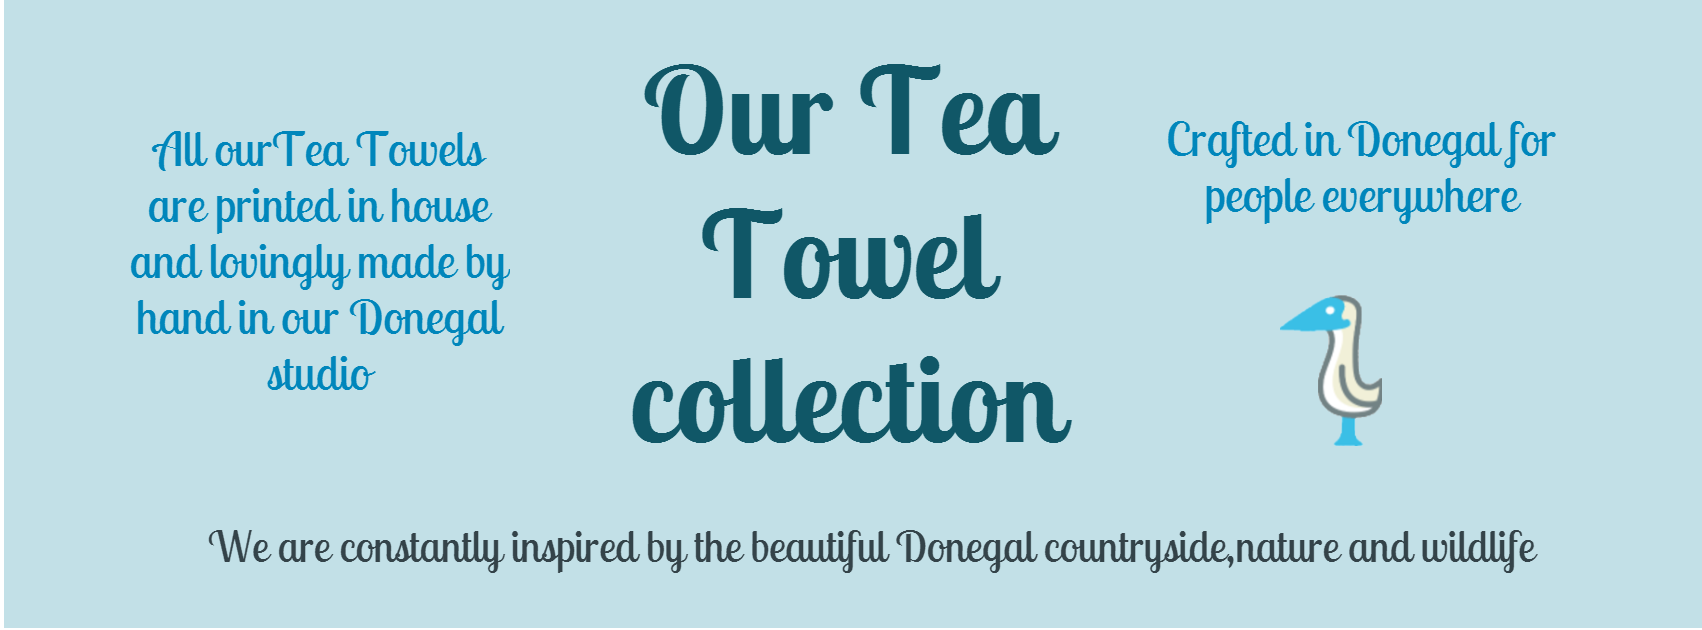 Tea Towel Collection